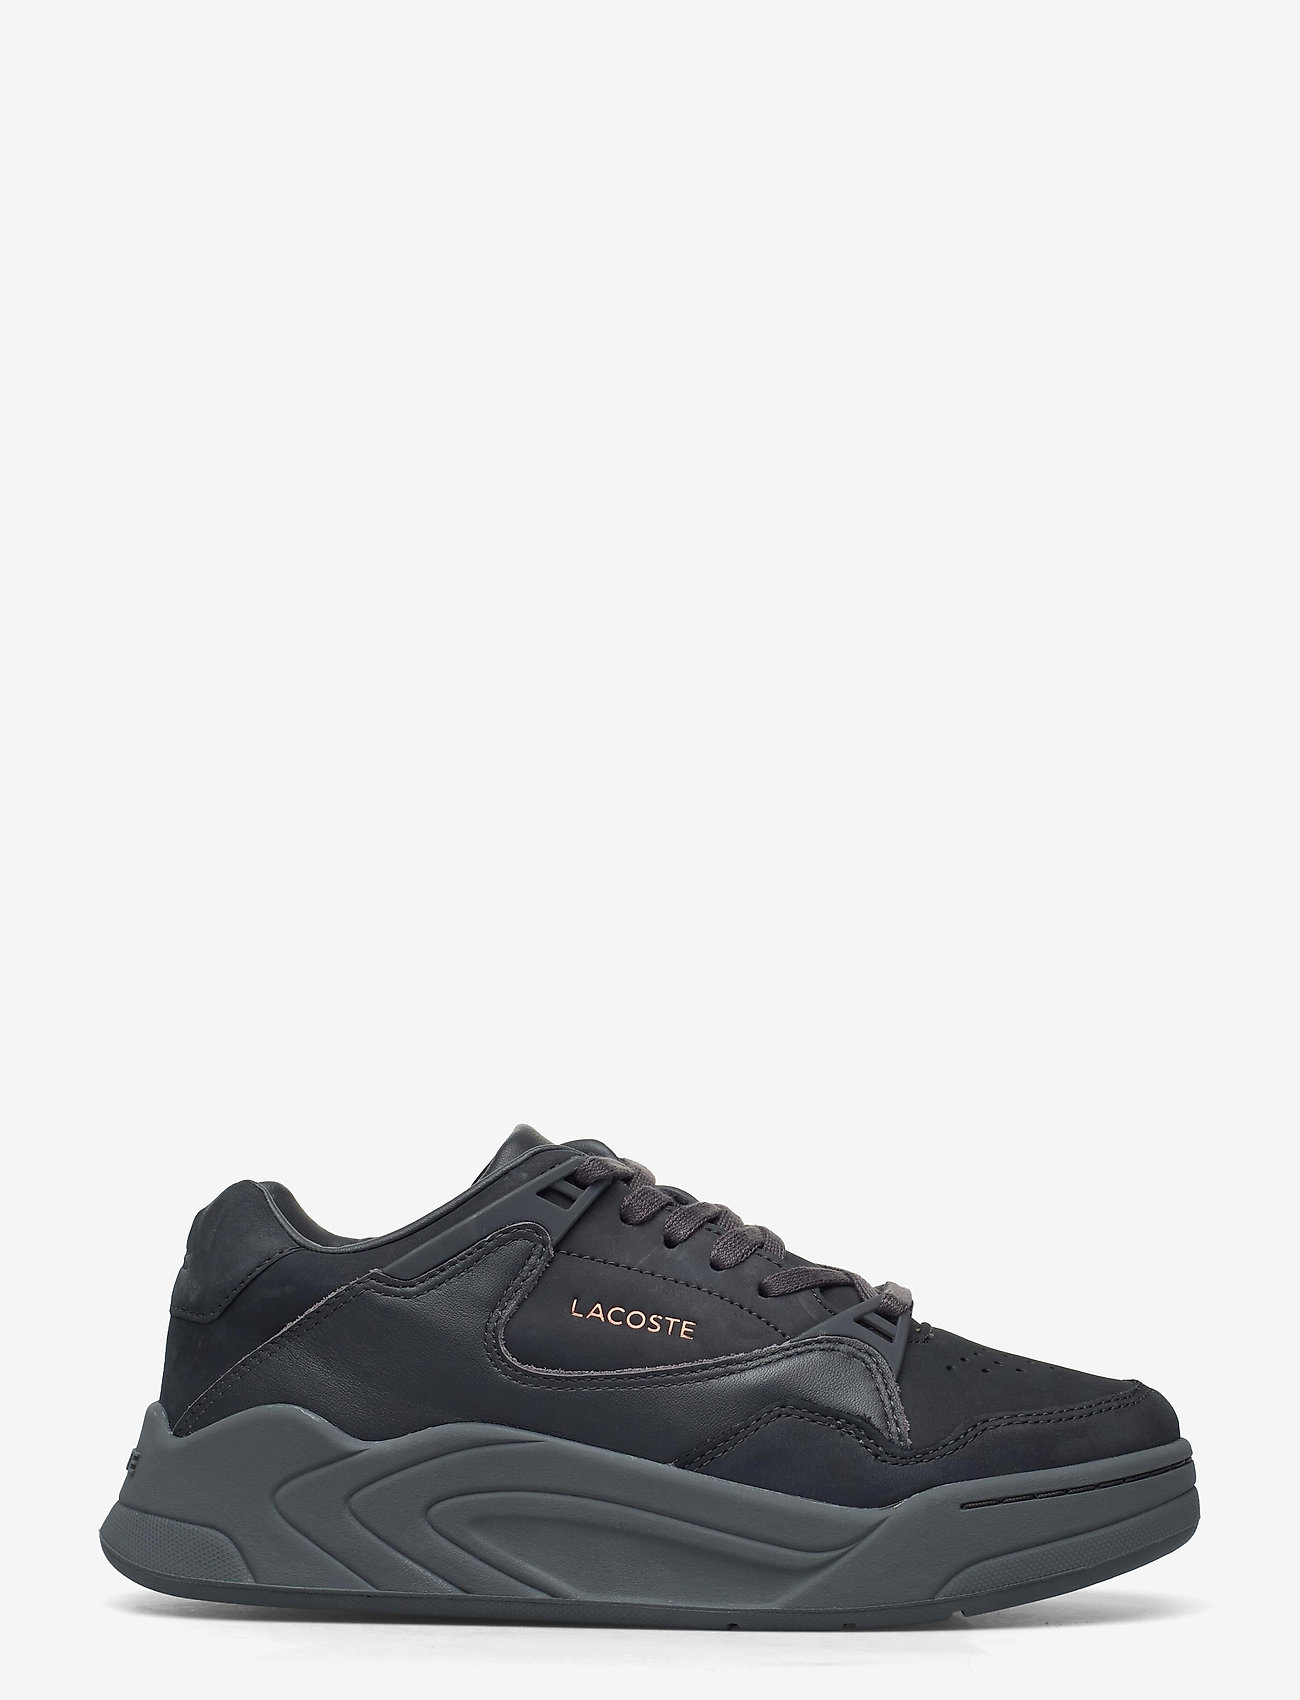 Lacoste Shoes - COURT SLAM 419 1 SFA - lage sneakers - dk gry/dk gry lth - 1